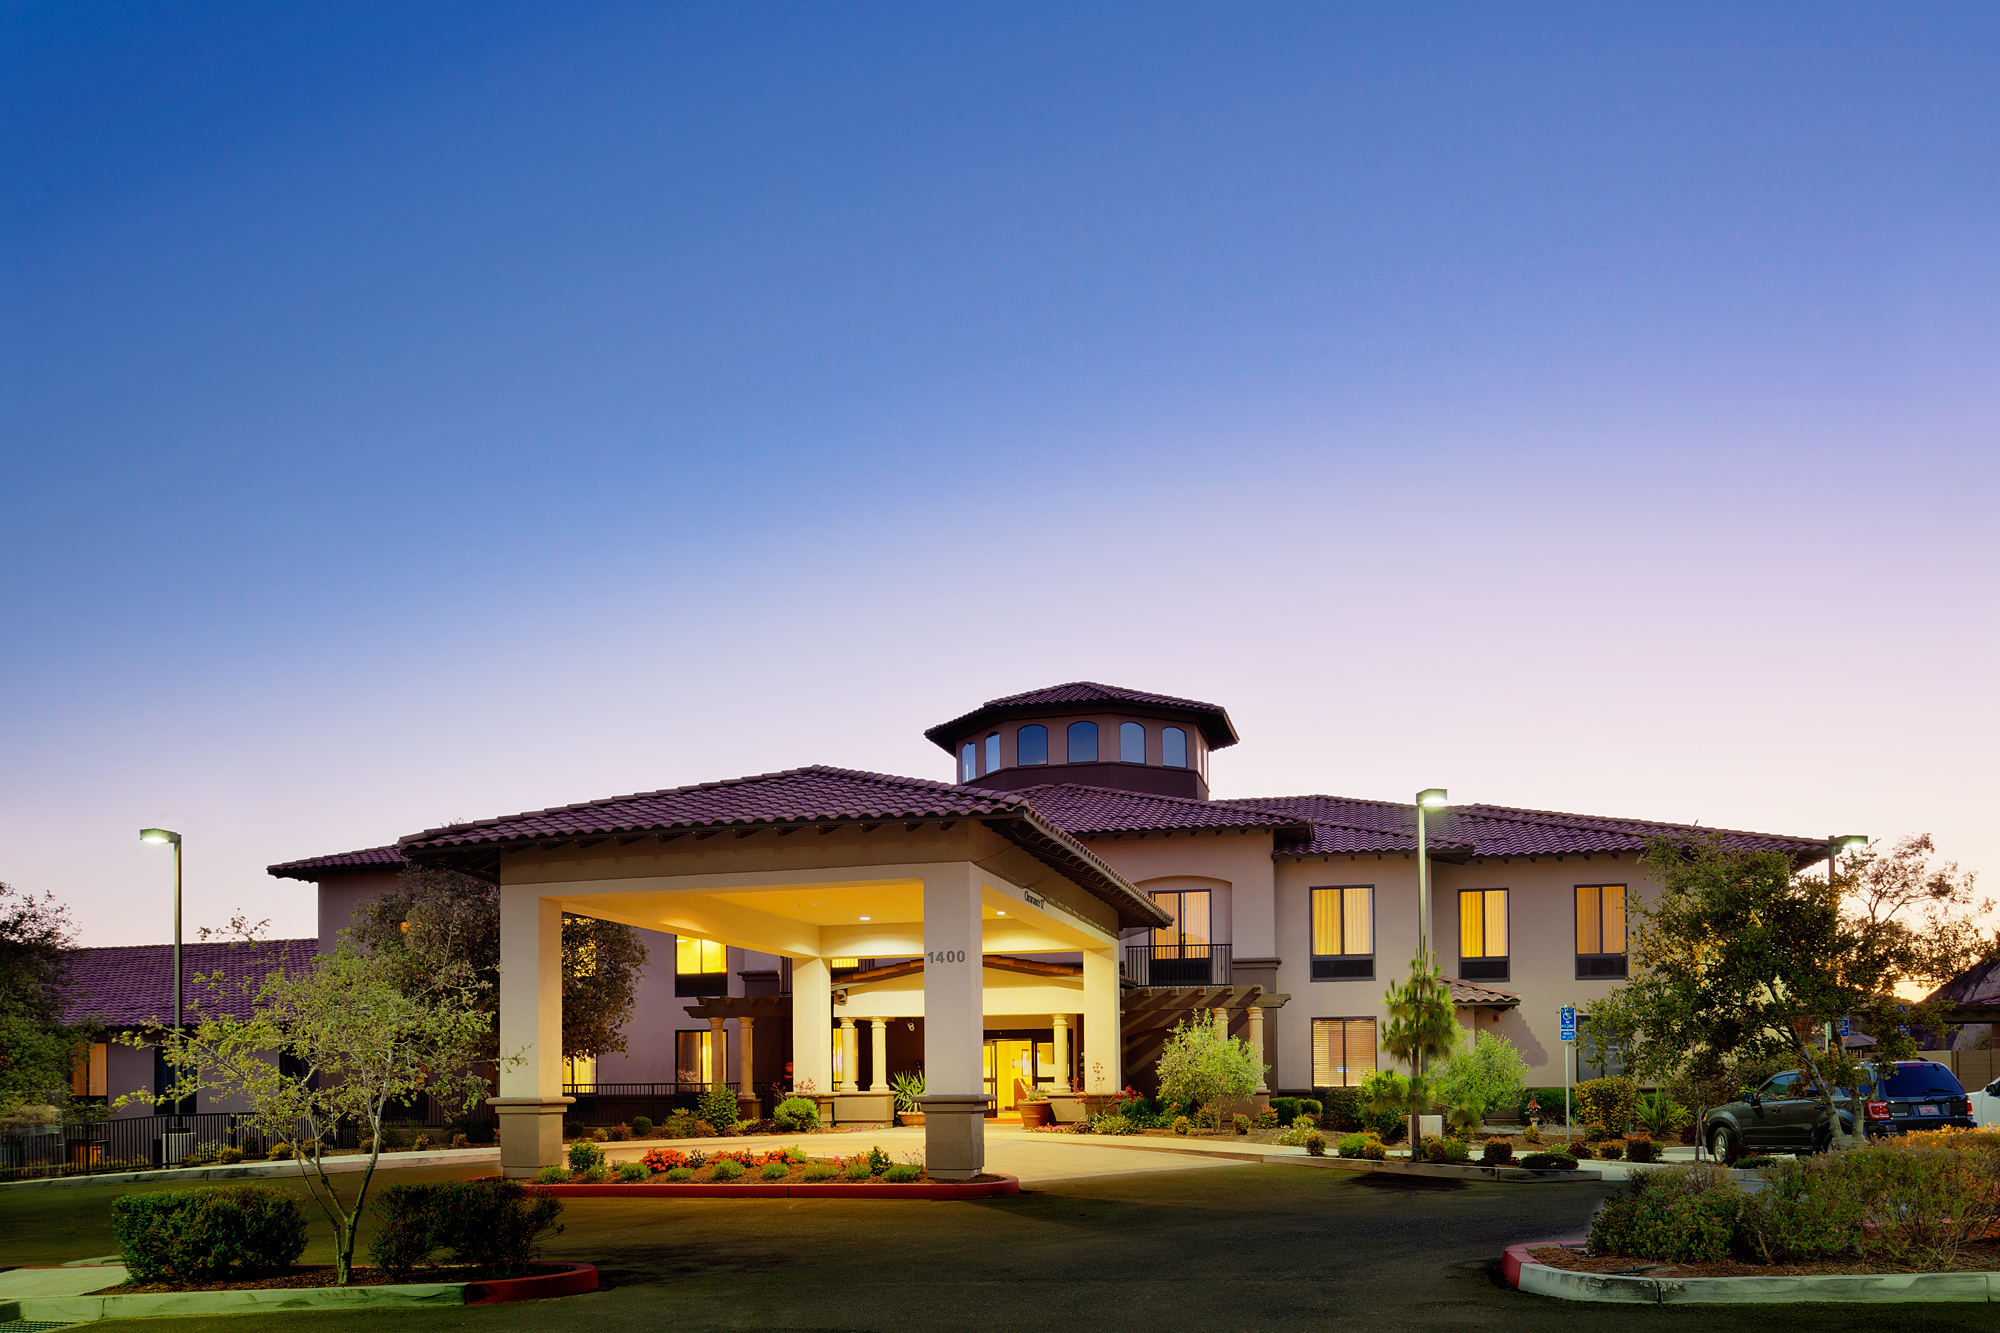 Hampton Inn Amp Suites Places To Stay In Arroyo Grande Toursim Hotel Visit Arroyo Grande